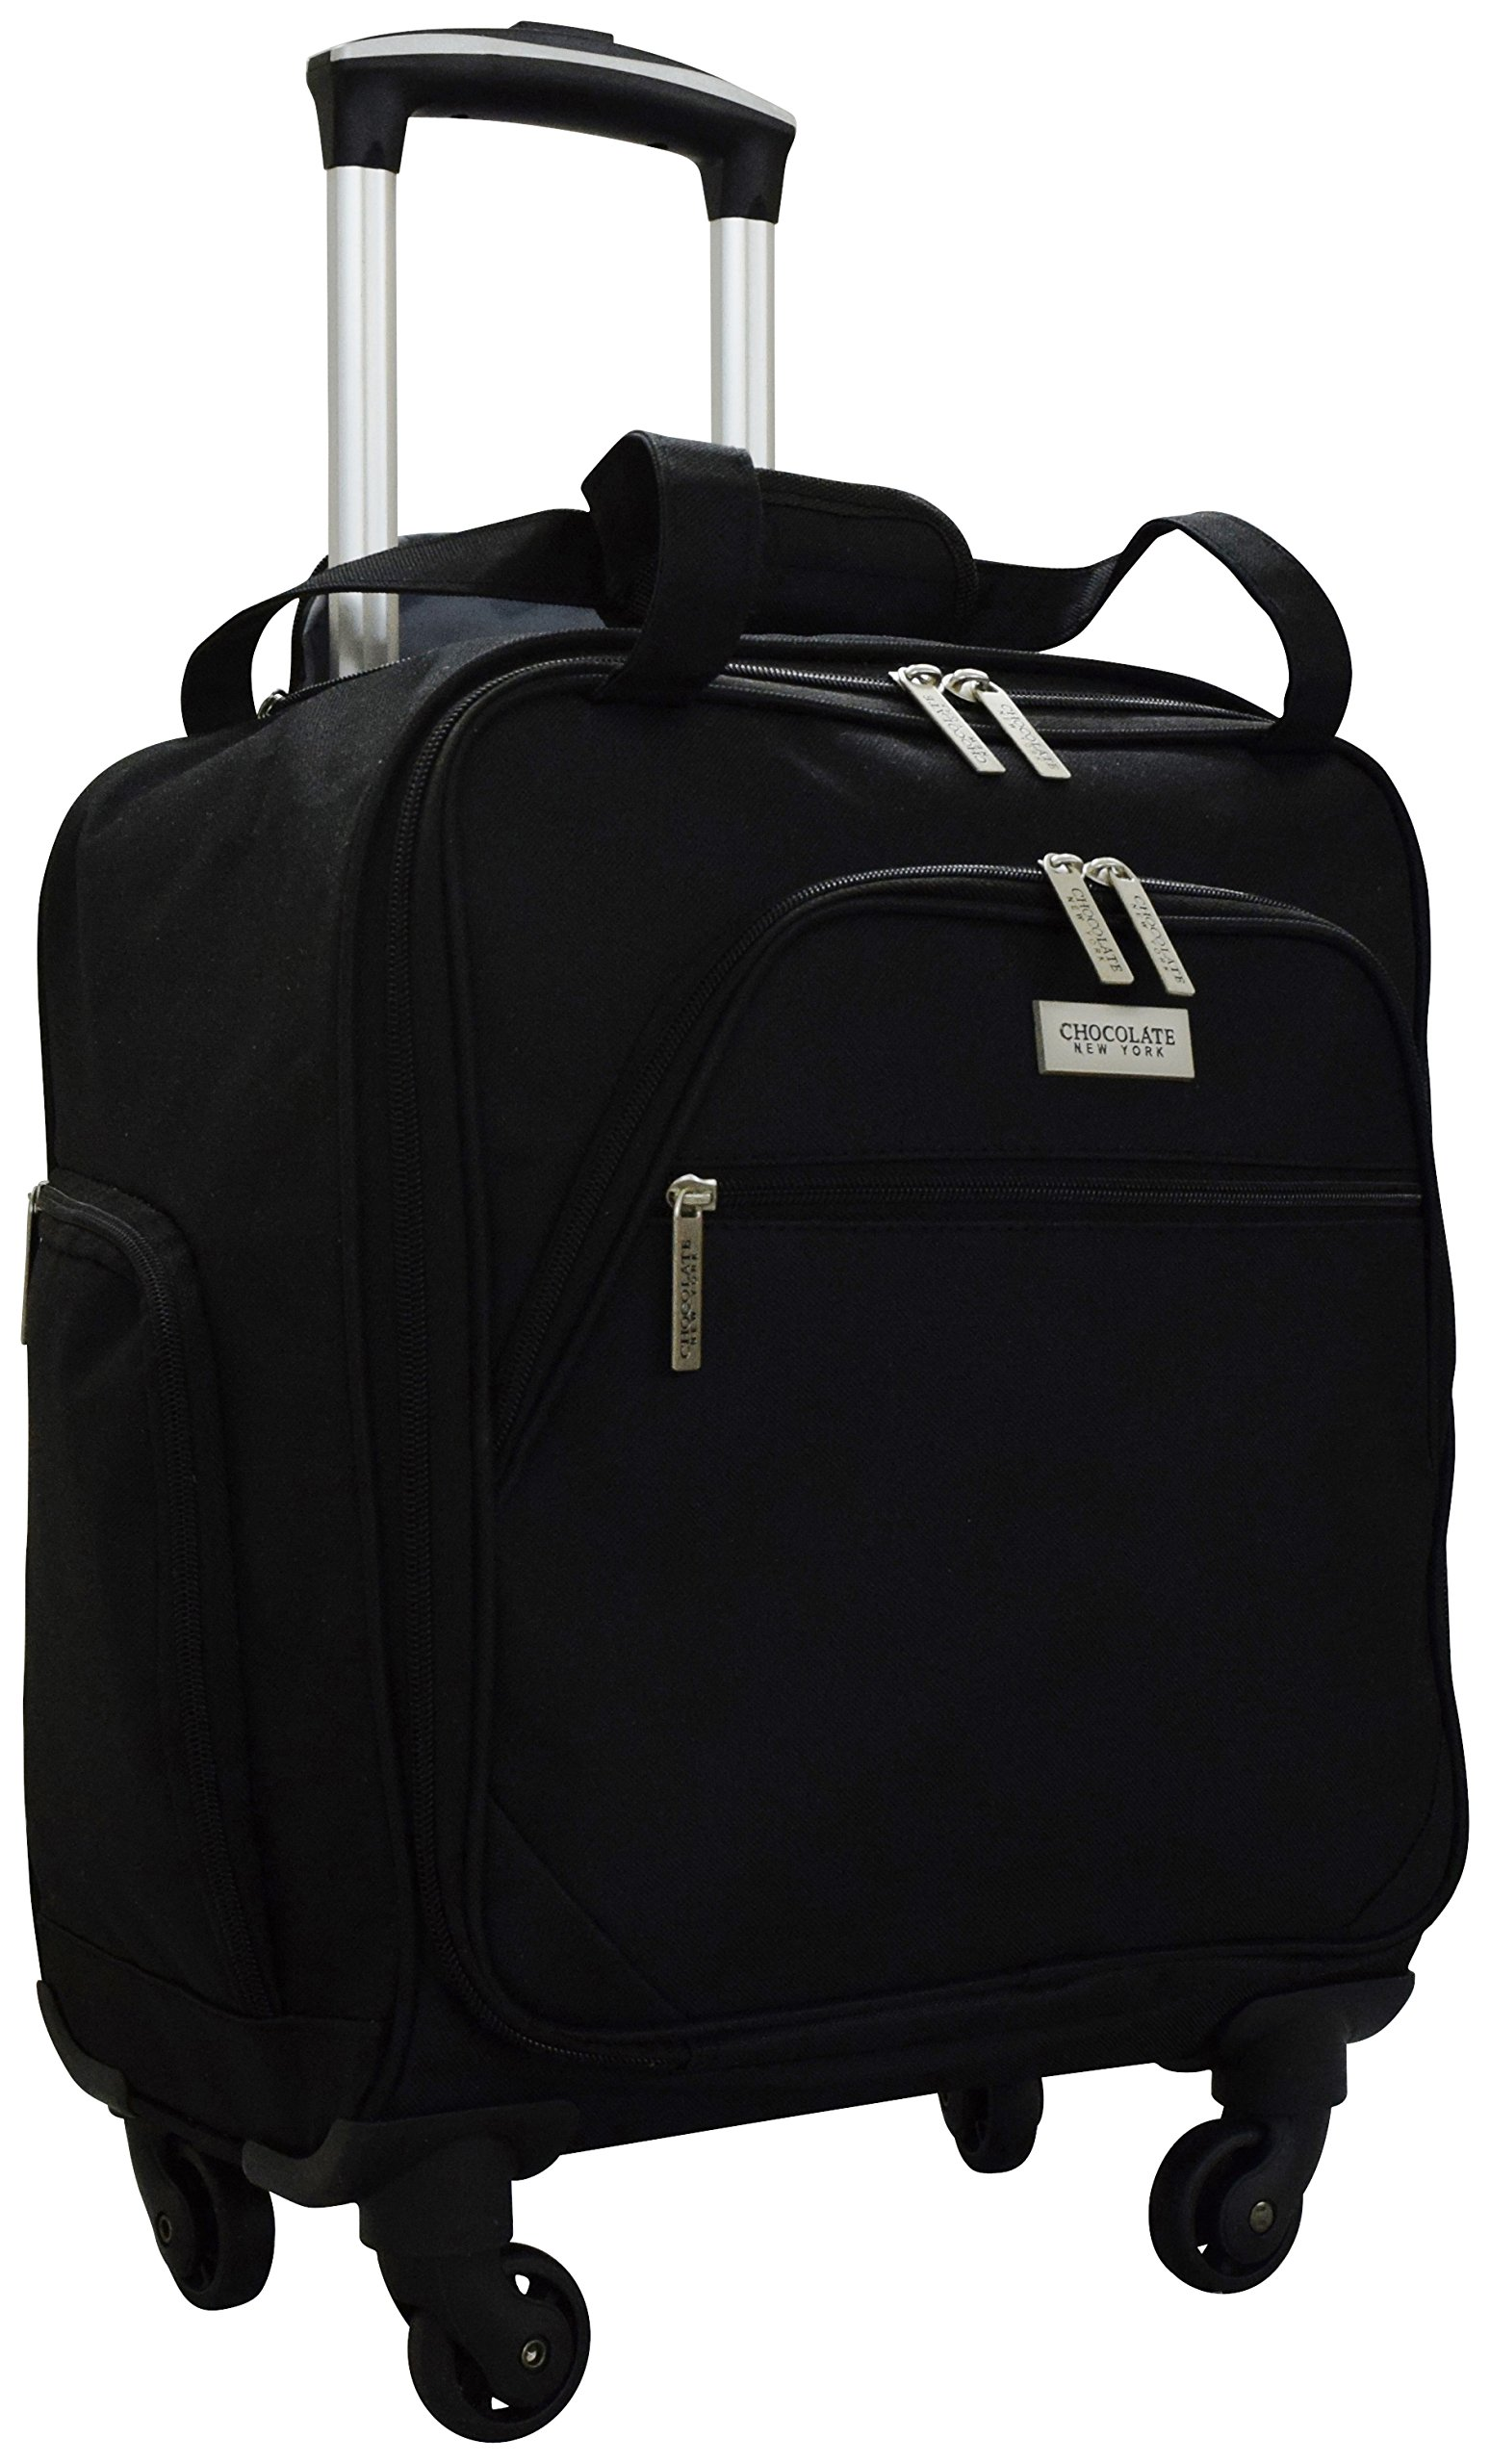 Chocolate New York Spinner Under Seater Luggage, 18 Inches - Black (753)